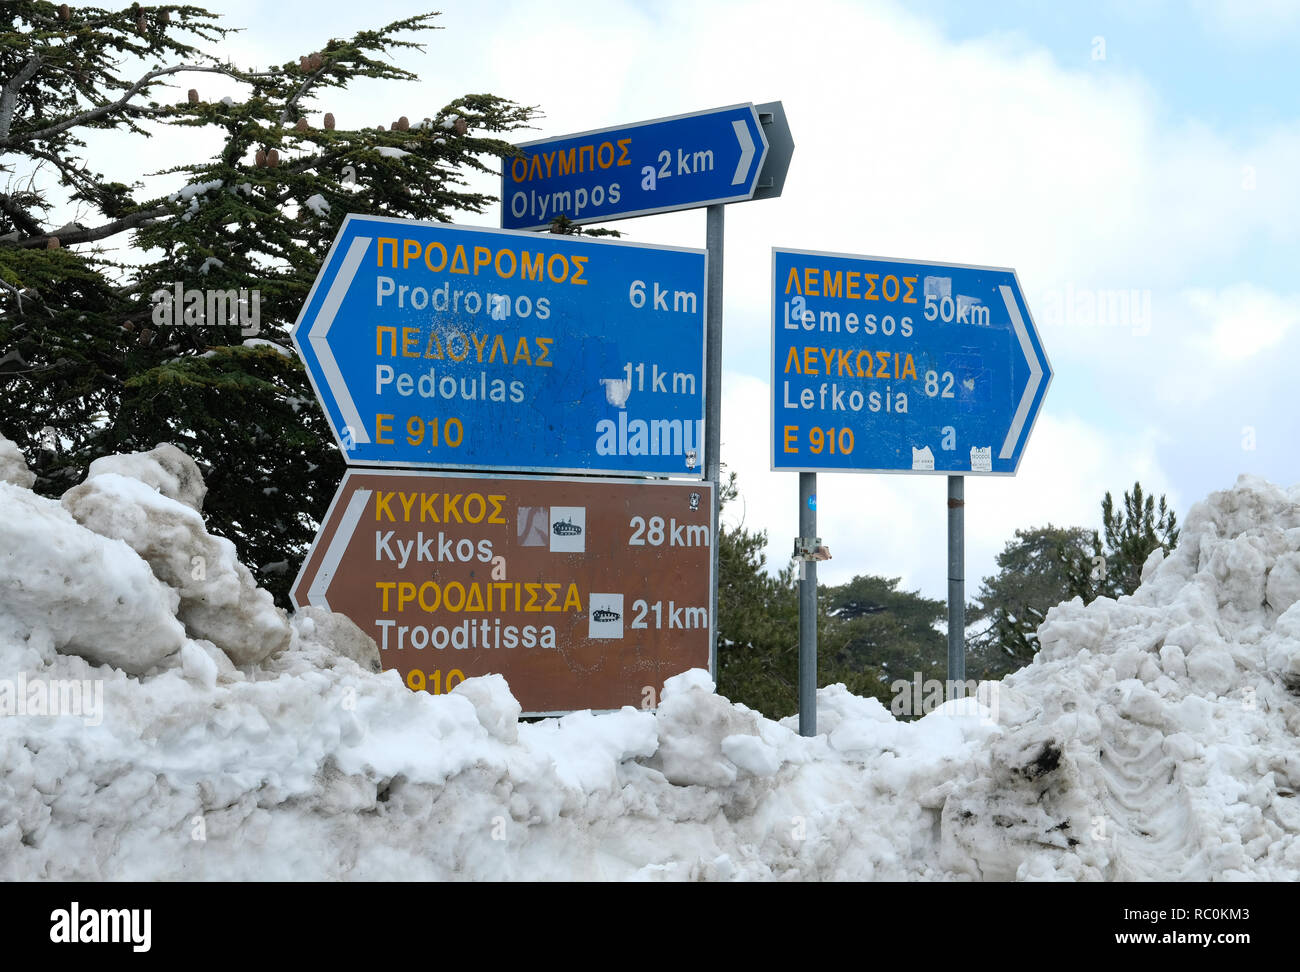 Road signs after heavy snow fall on Mount Olympus in the Troodos Mountains, Cyprus. - Stock Image